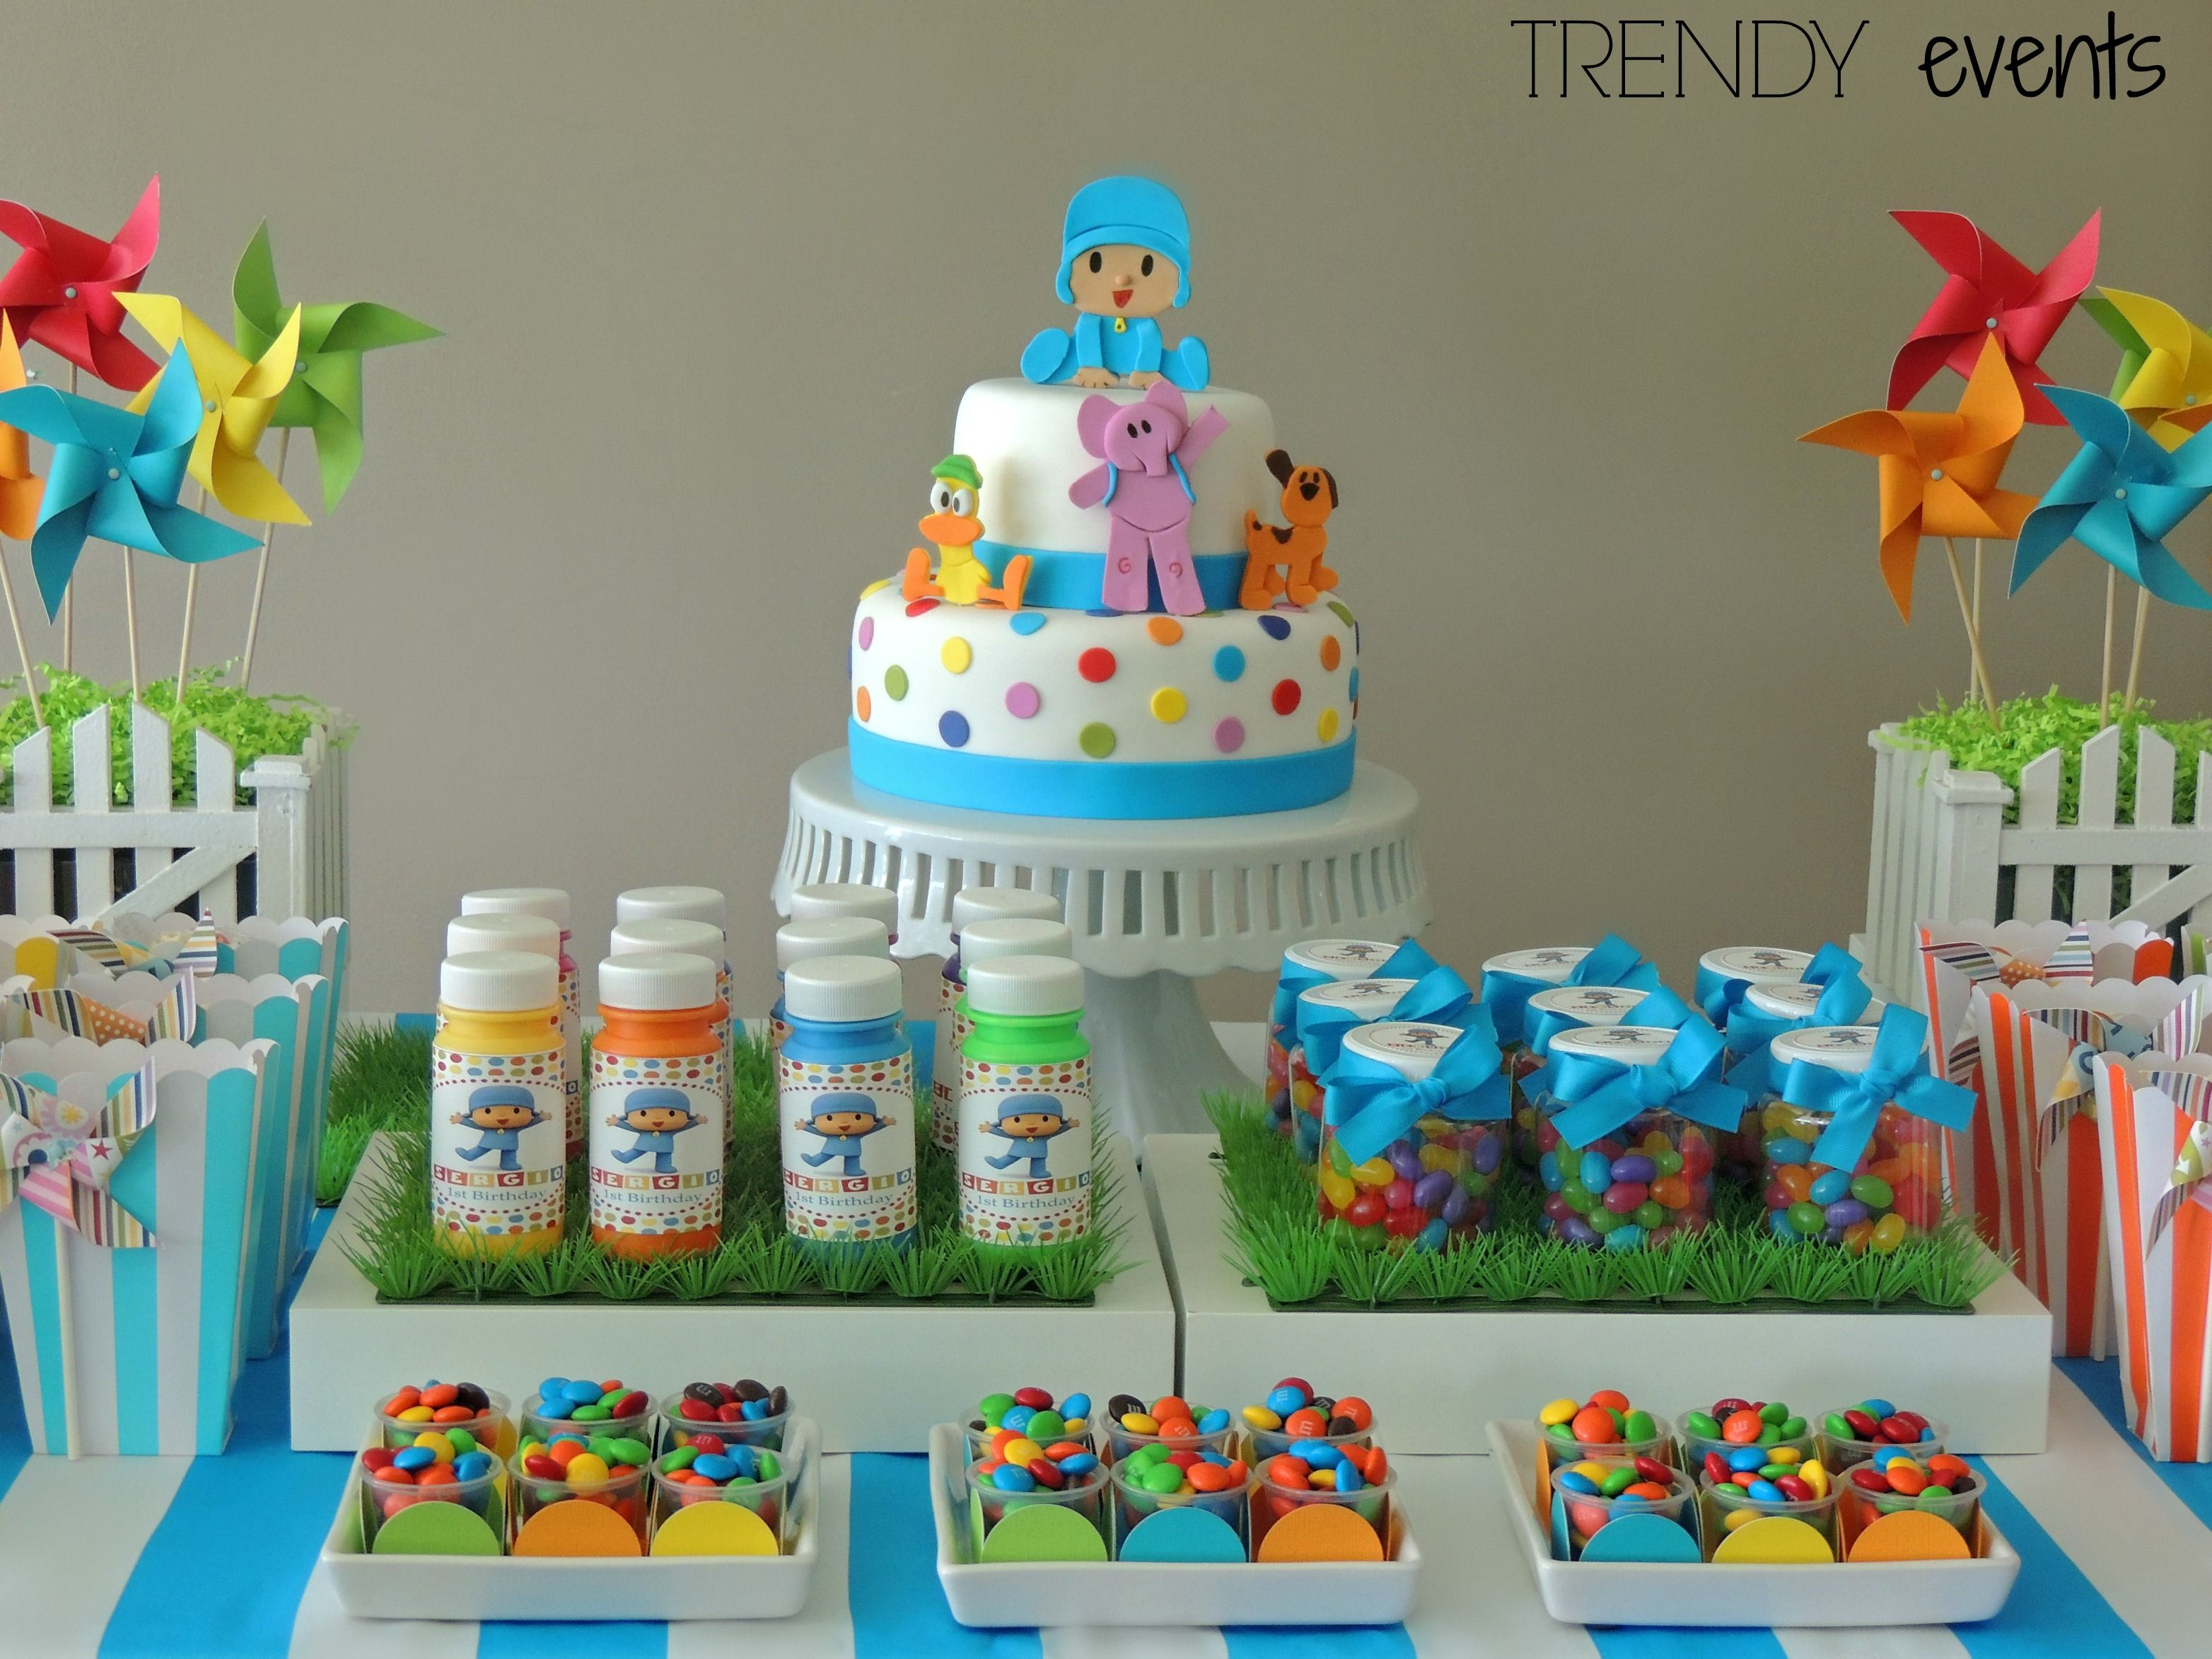 Pocoyo party ideas by trendy events - Fiestas de cumpleanos decoracion ...